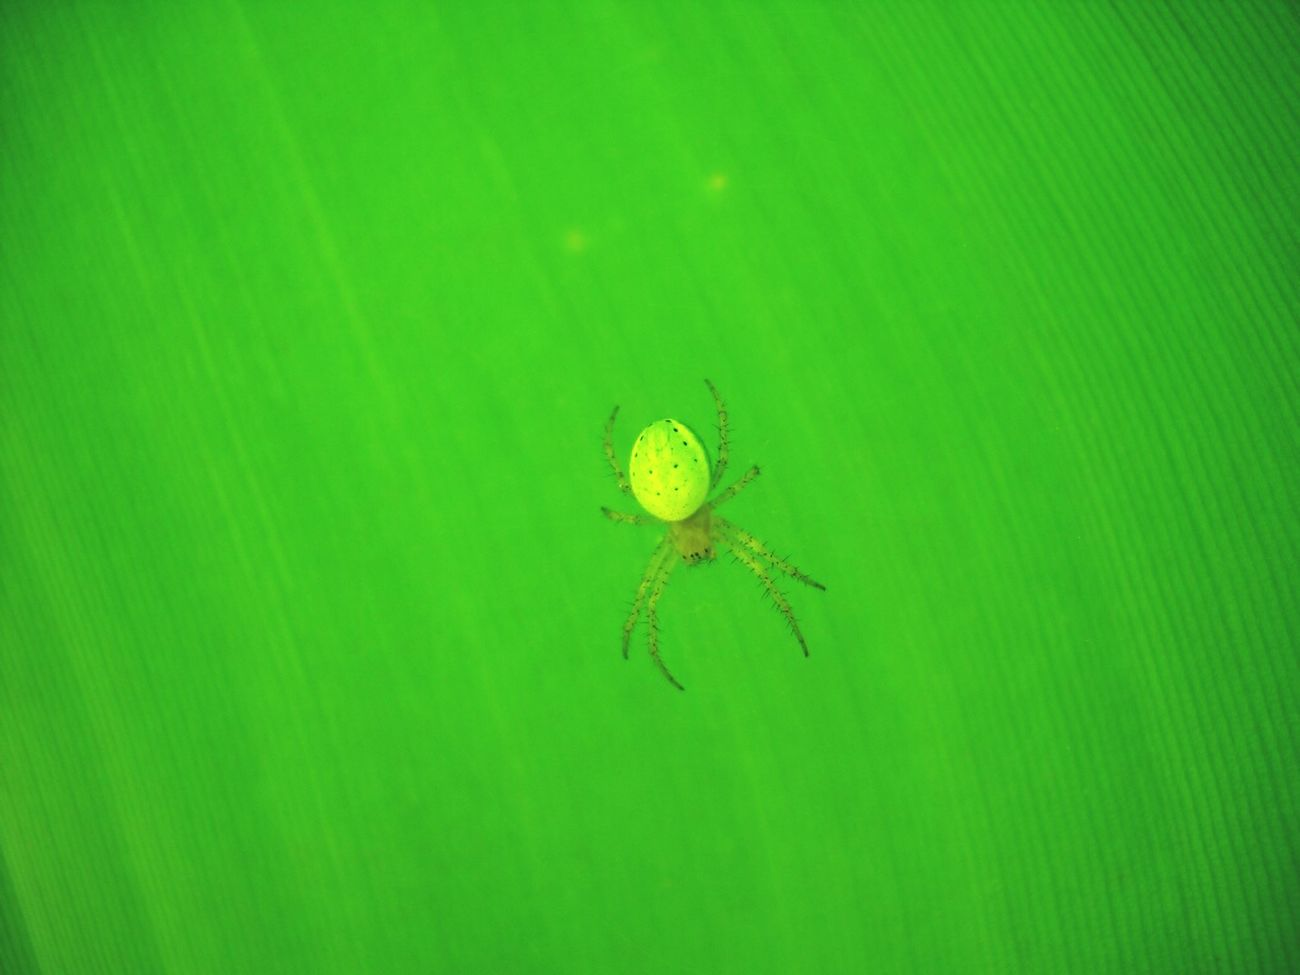 Mimetism Green Leaves Spiders